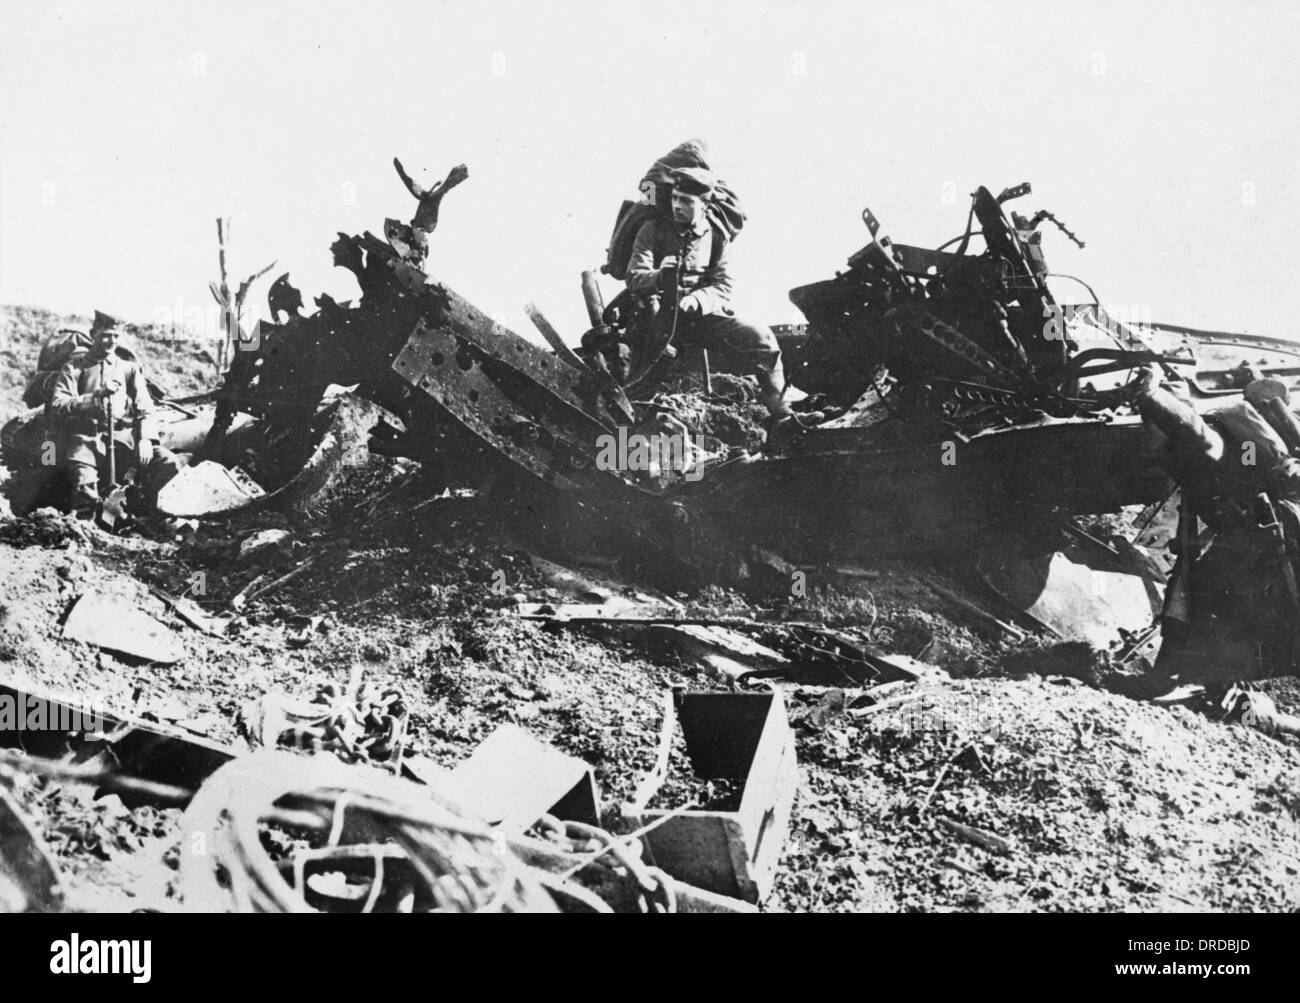 Destroyed Tank WWI - Stock Image